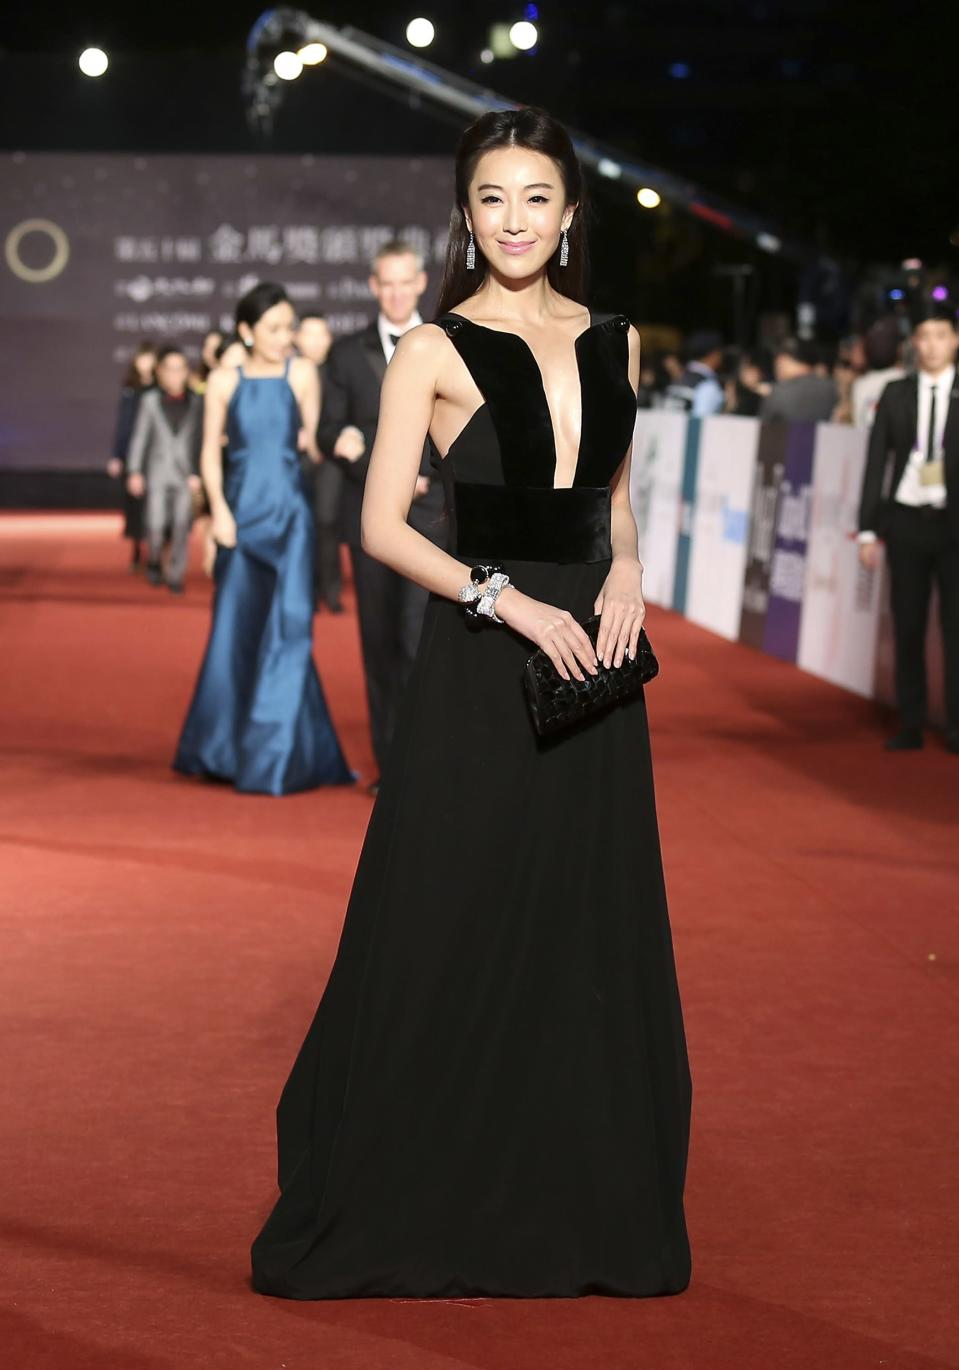 Taiwanese model and actress Sonia Sui poses for photographers on the red carpet at the 50th Golden Horse Film Awards in Taipei November 23, 2013. REUTERS/Patrick Lin (TAIWAN - Tags: ENTERTAINMENT)